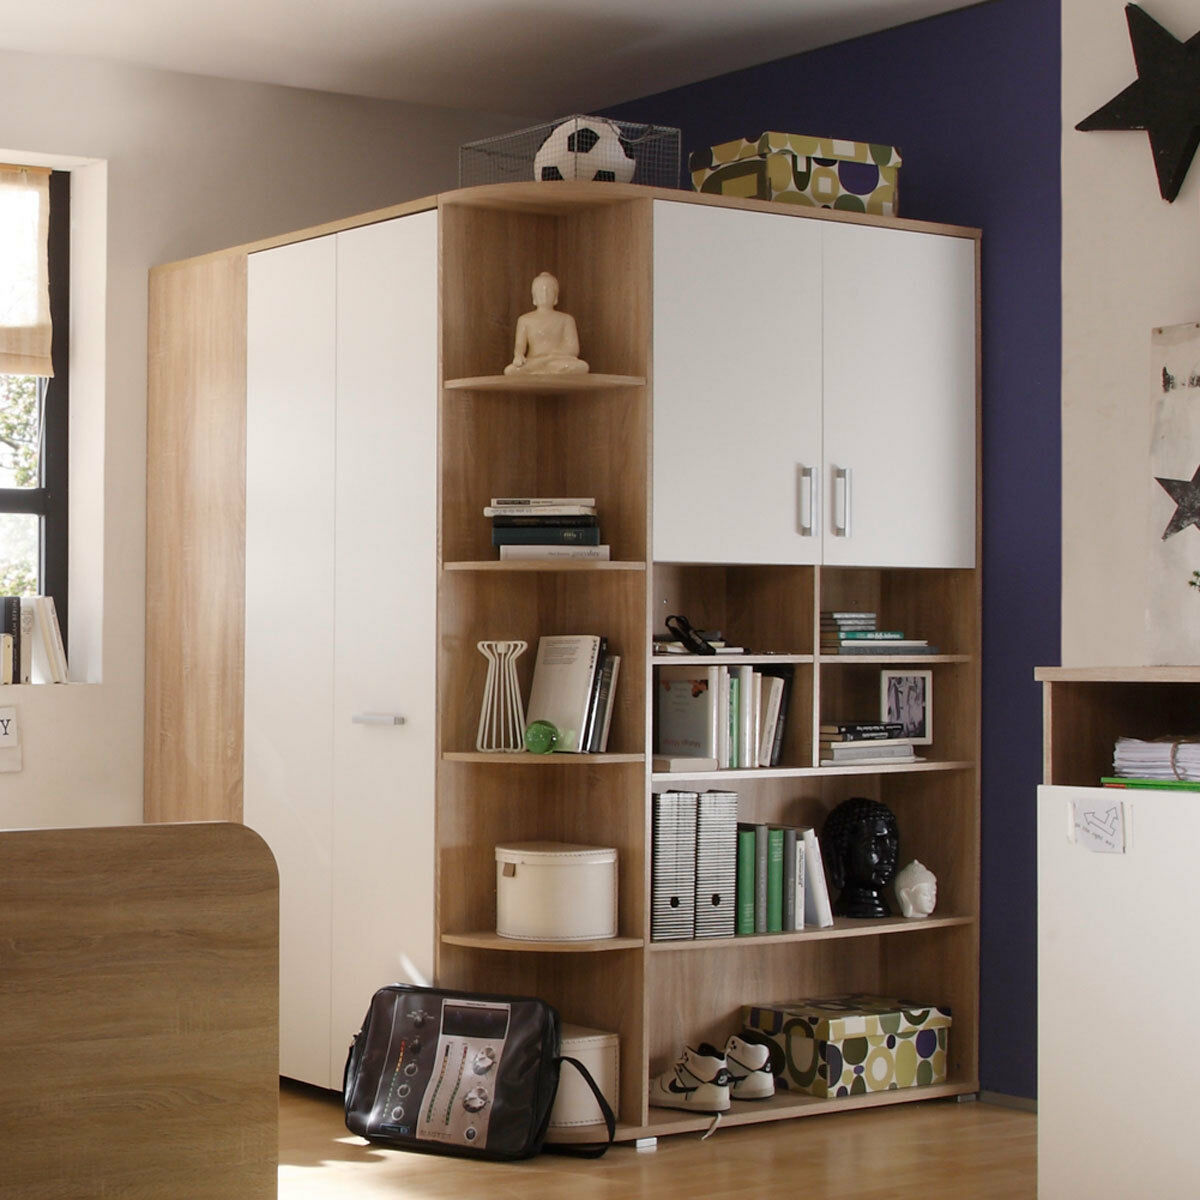 begehbarer kleiderschrank corner eckschrank jugendzimmer eiche sonoma eur 389 95 picclick de. Black Bedroom Furniture Sets. Home Design Ideas